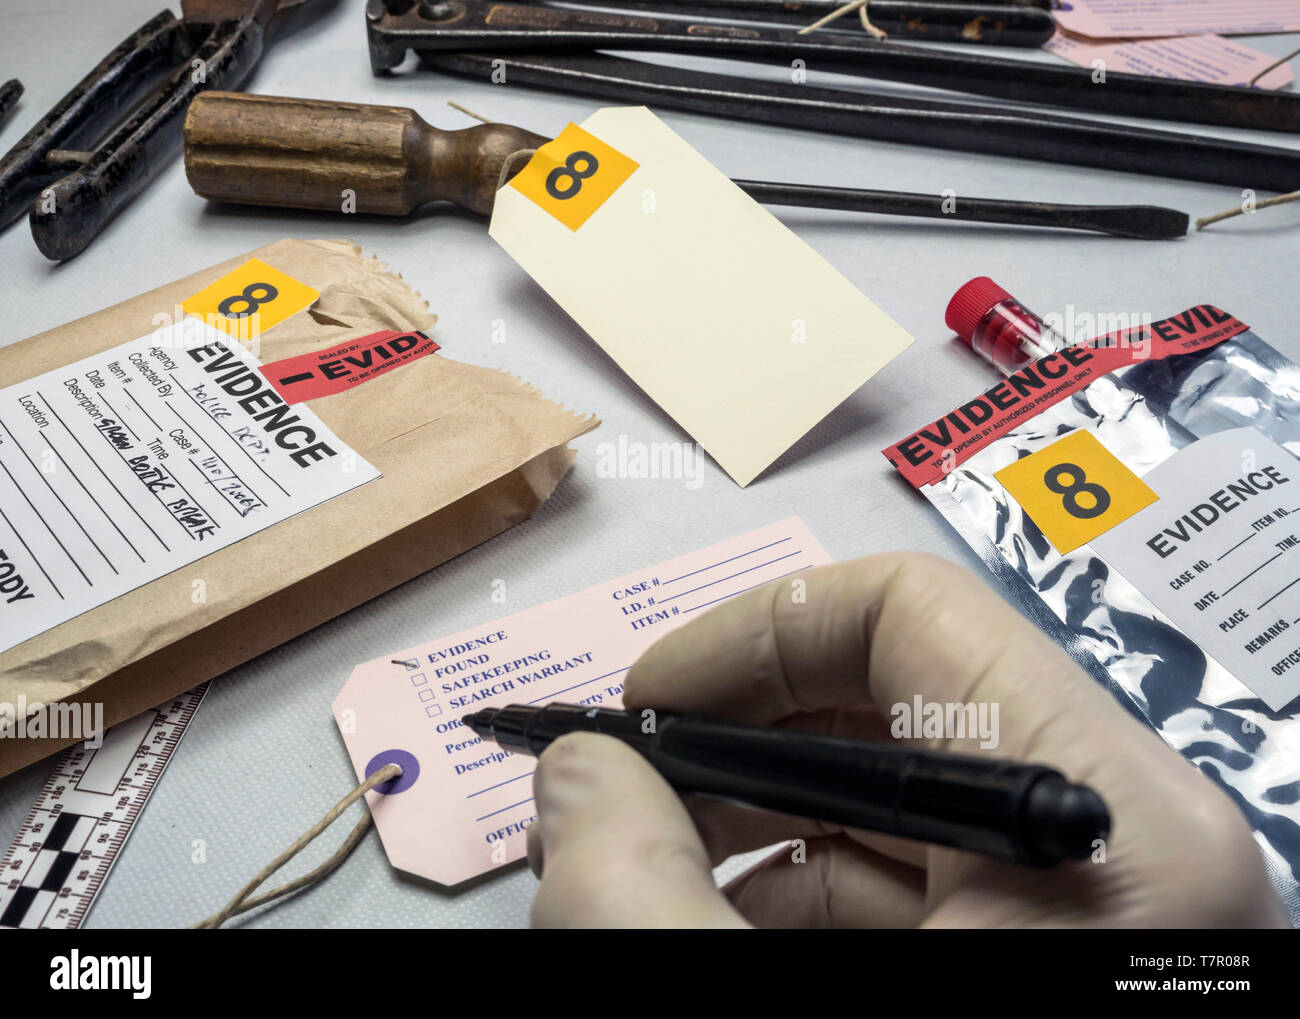 Police Expert Writes About Label Evidence Number Various Laboratory Tests Forensic Equipment Conceptual Image Stock Photo Alamy